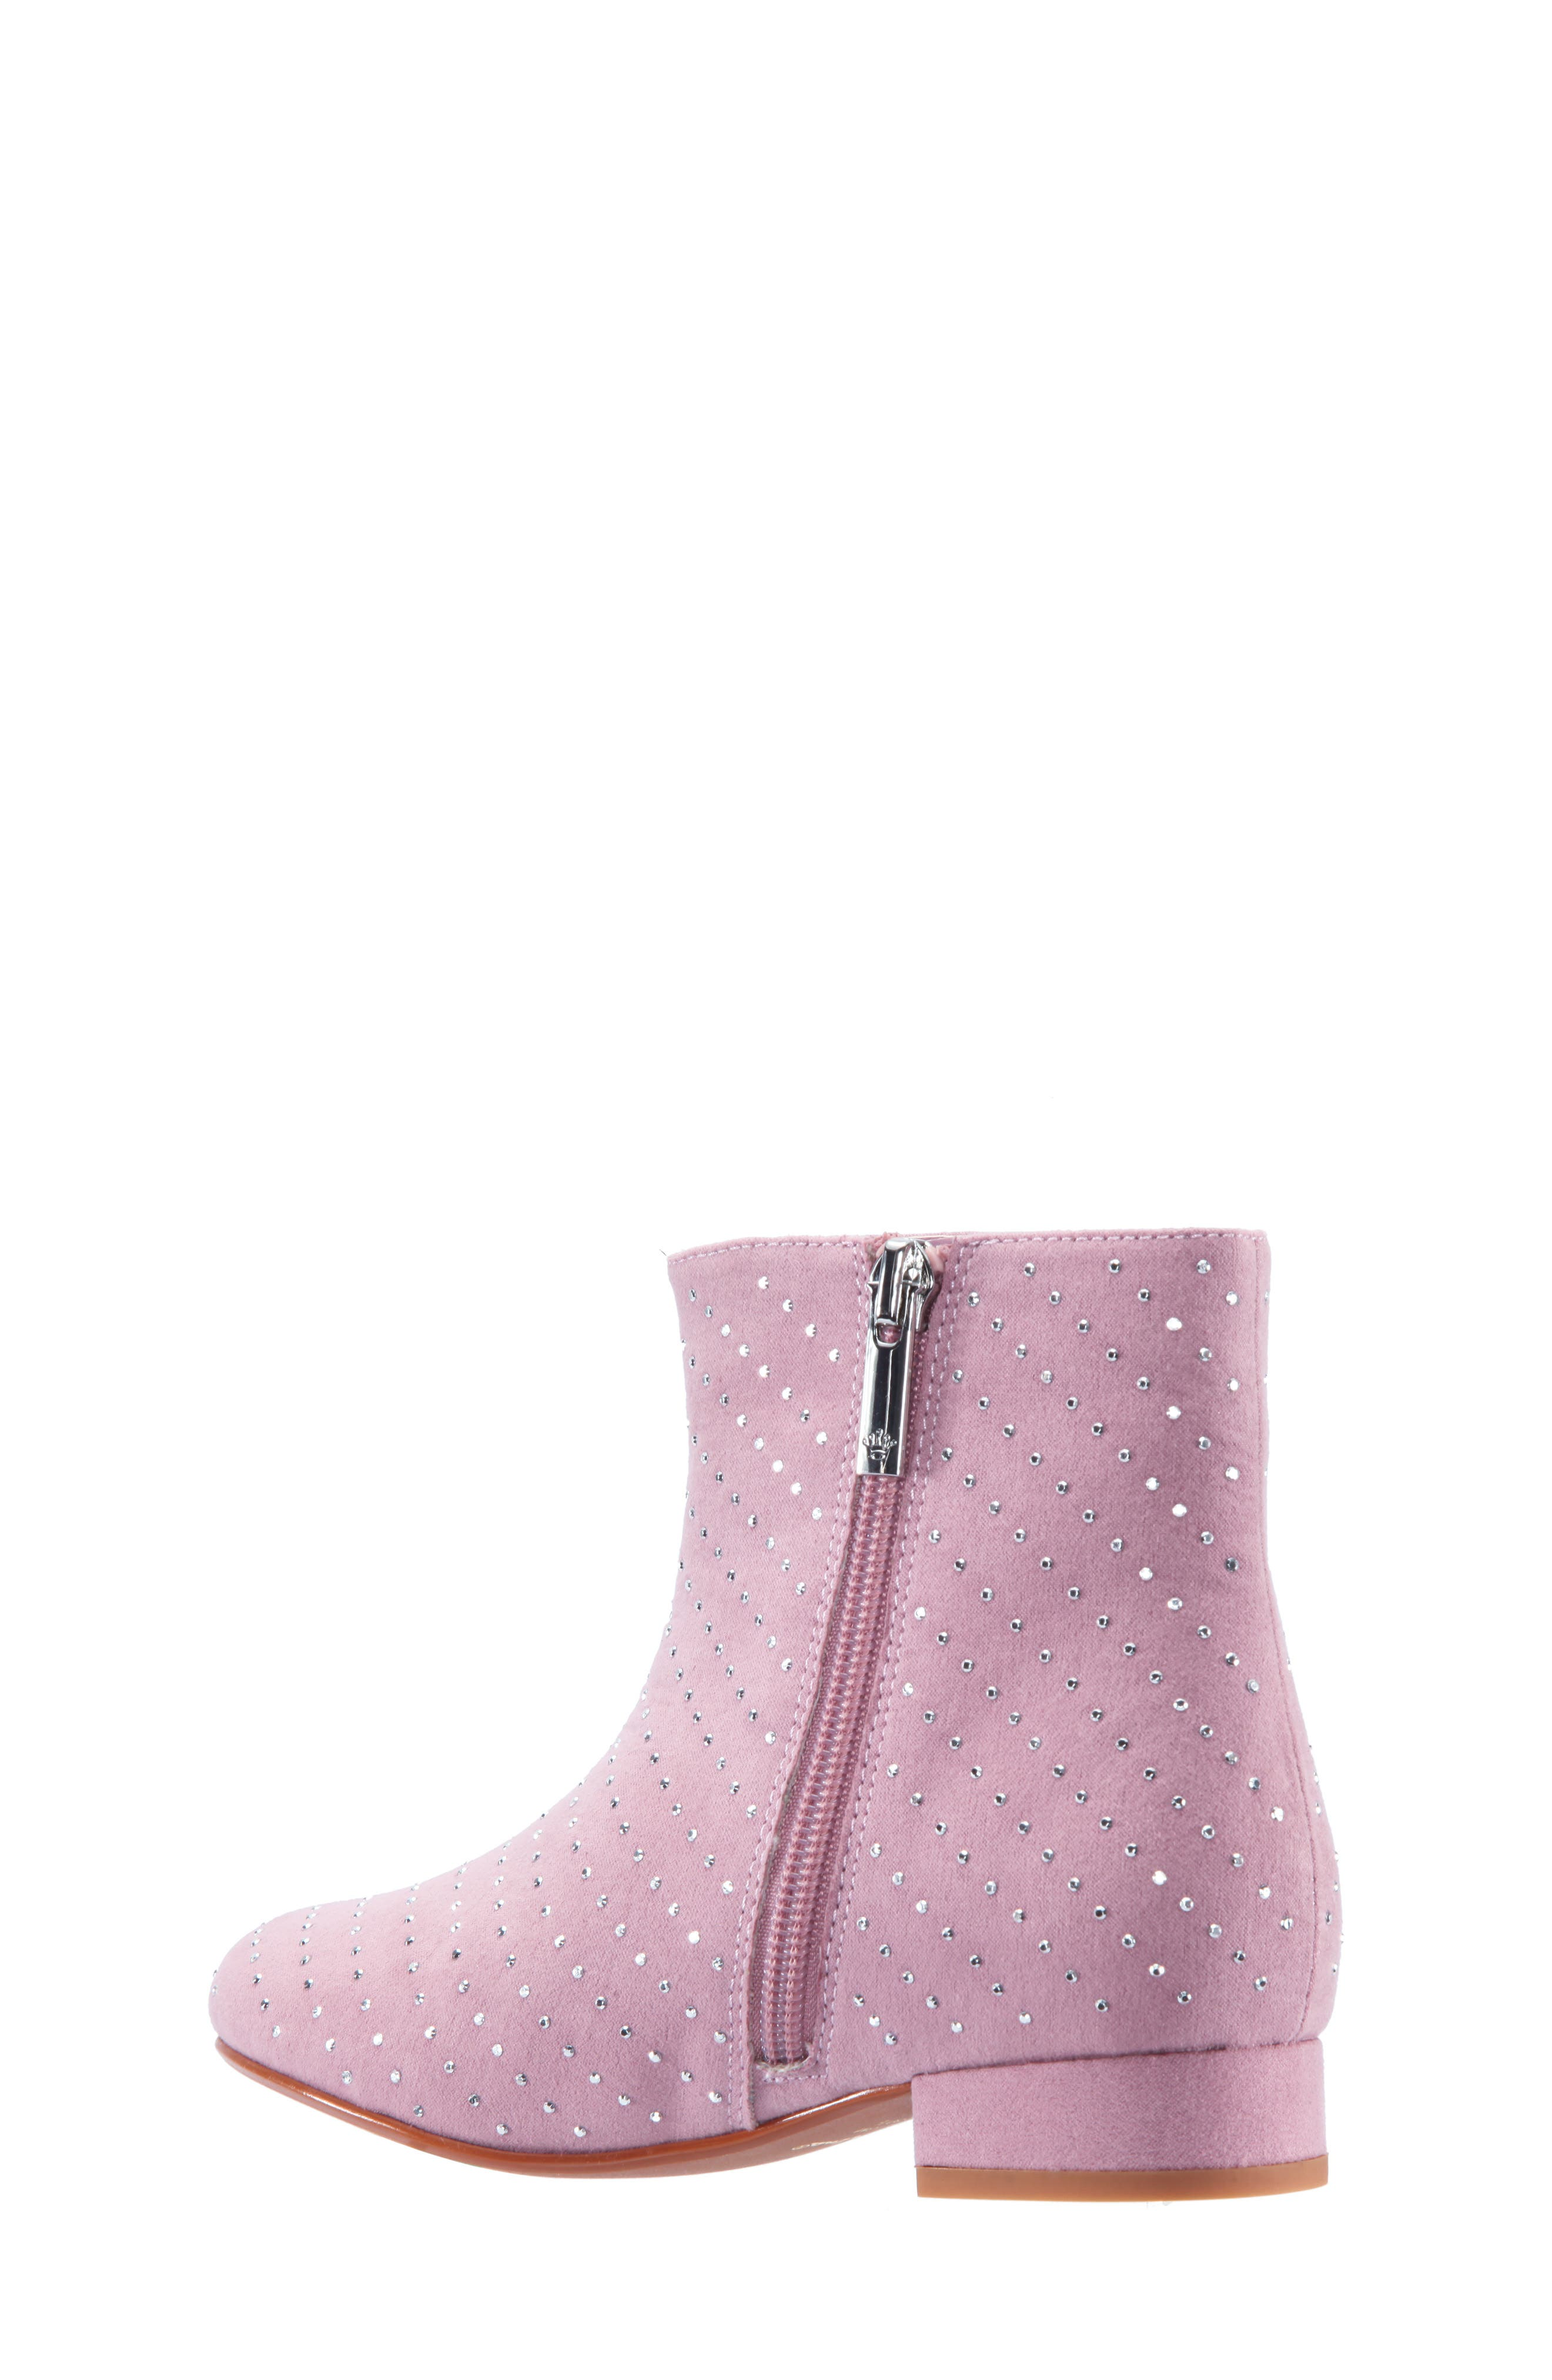 Peaches Studded Bootie,                             Alternate thumbnail 2, color,                             PINK MICRO SUEDE